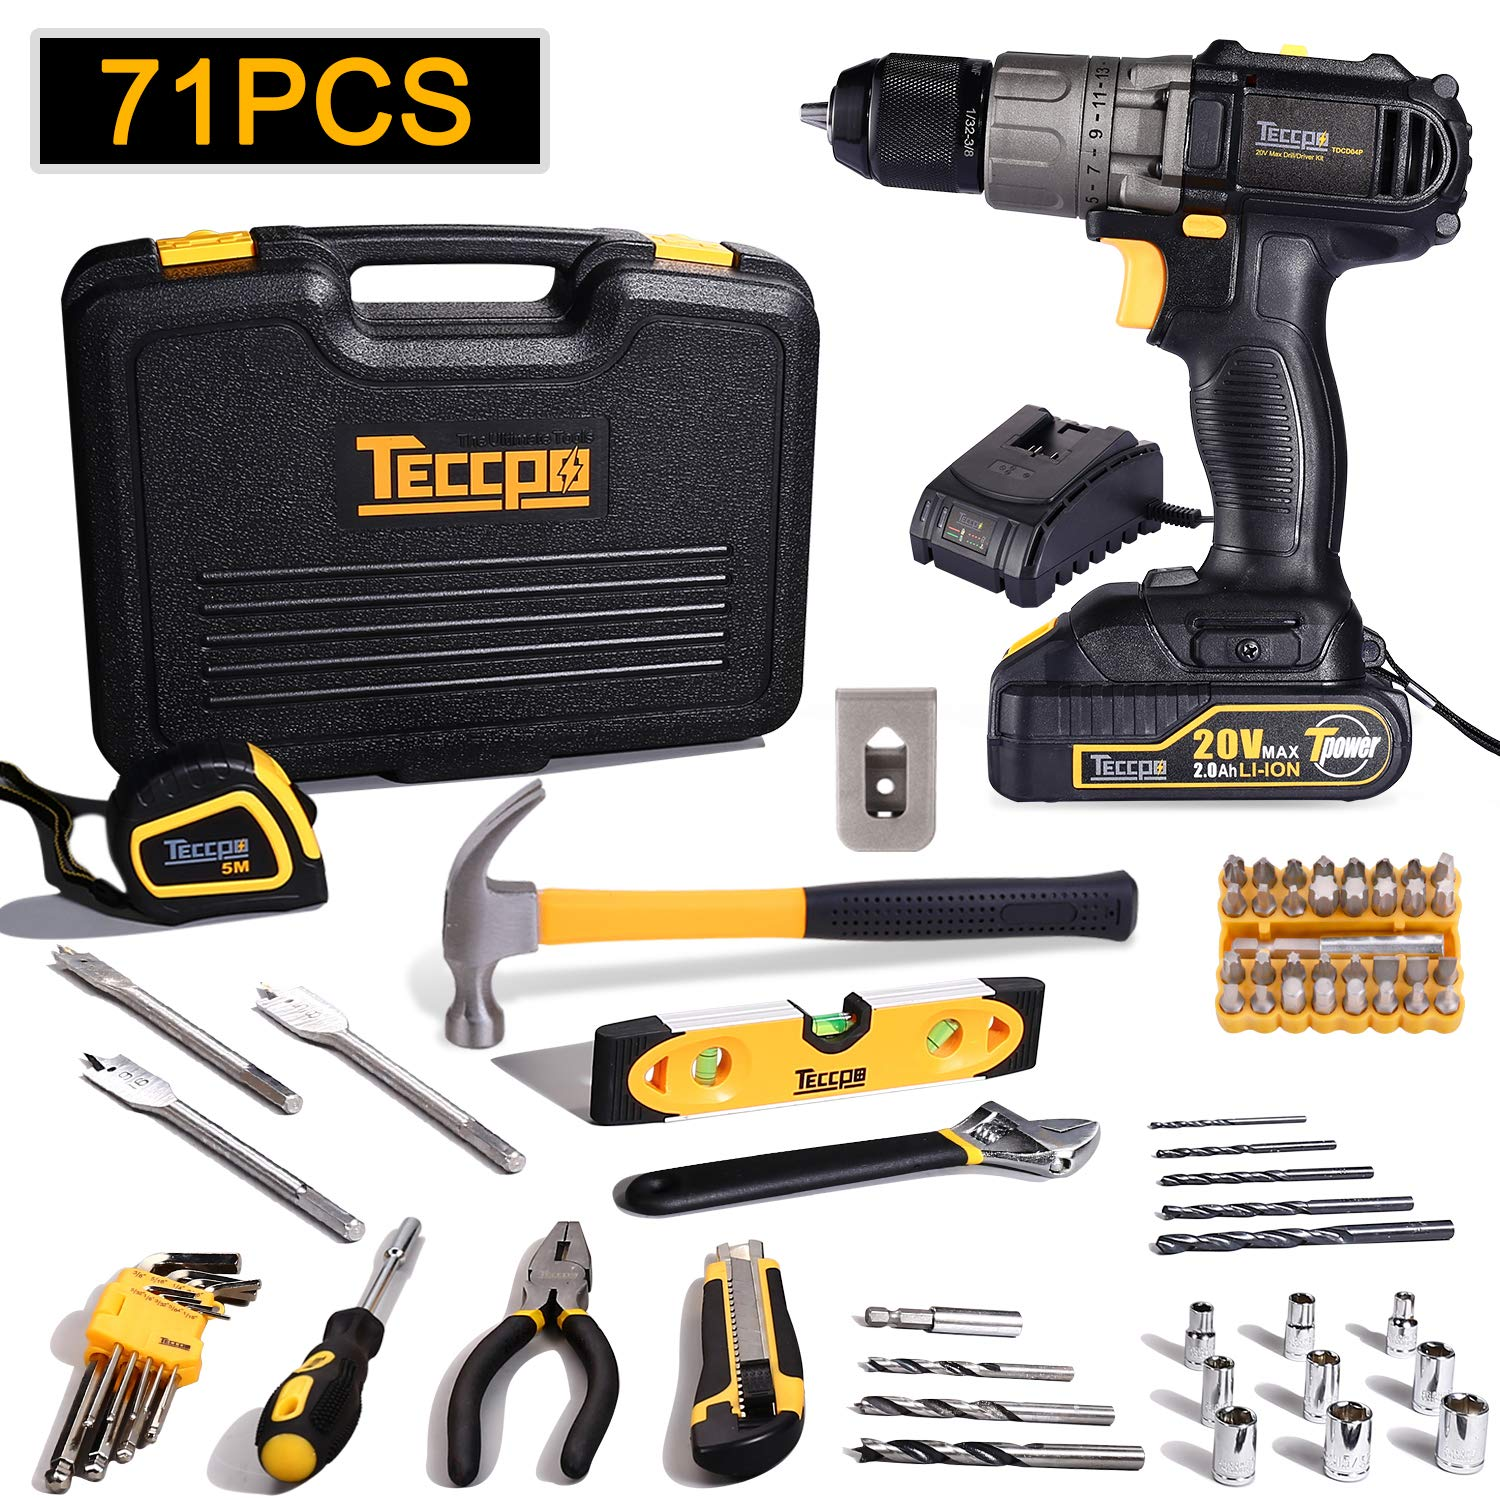 Drill and Home Tool Kit, TECCPO 20V Cordless Drill with 2.0Ah Battery and Fast Charger, 71Pcs Home Tools Includes Hammer, Slotted Screwdriver and Wrench with Plastic Toolbox Storage Case